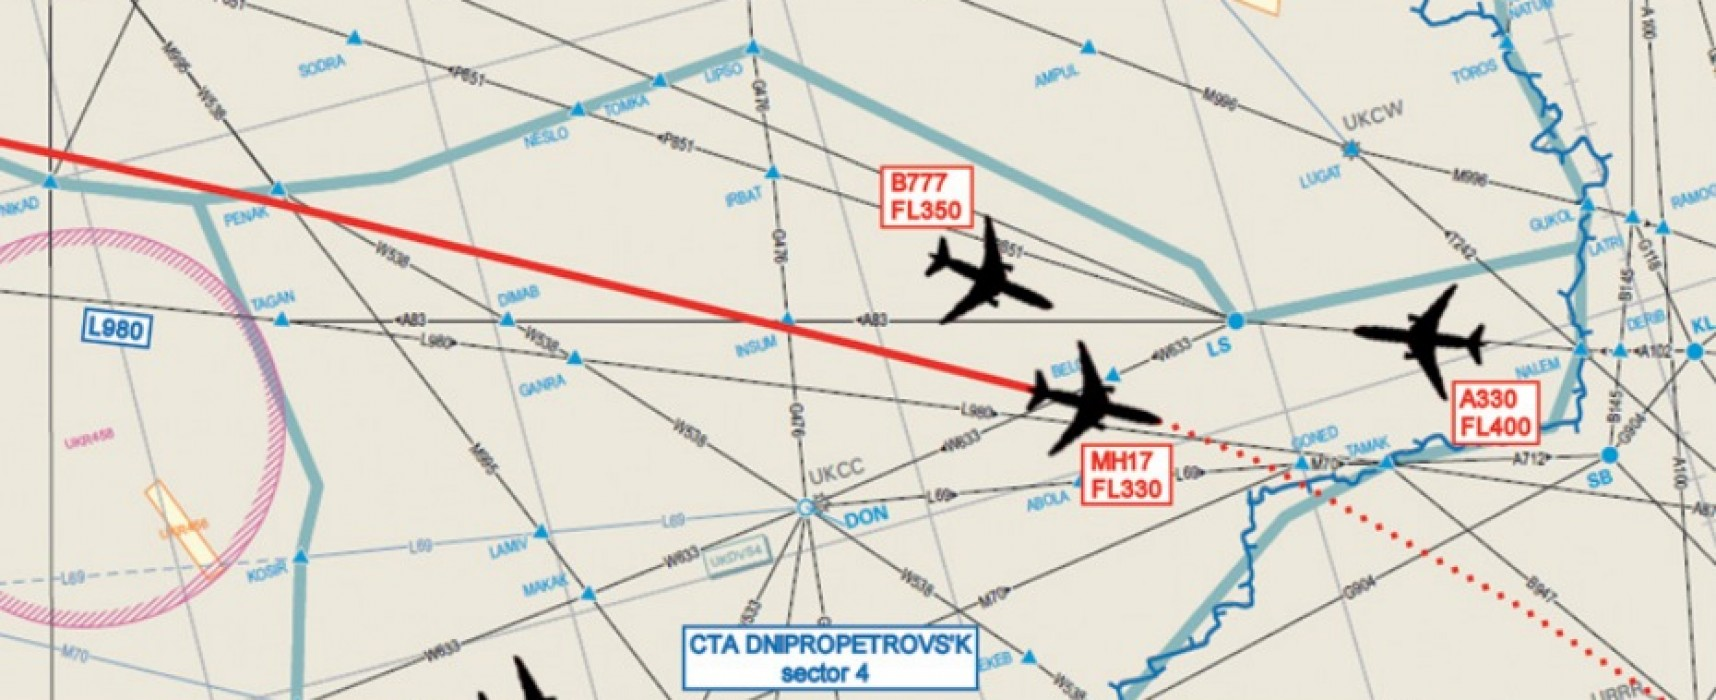 SU-25, MH17 and the Problems with Keeping a Story Straight